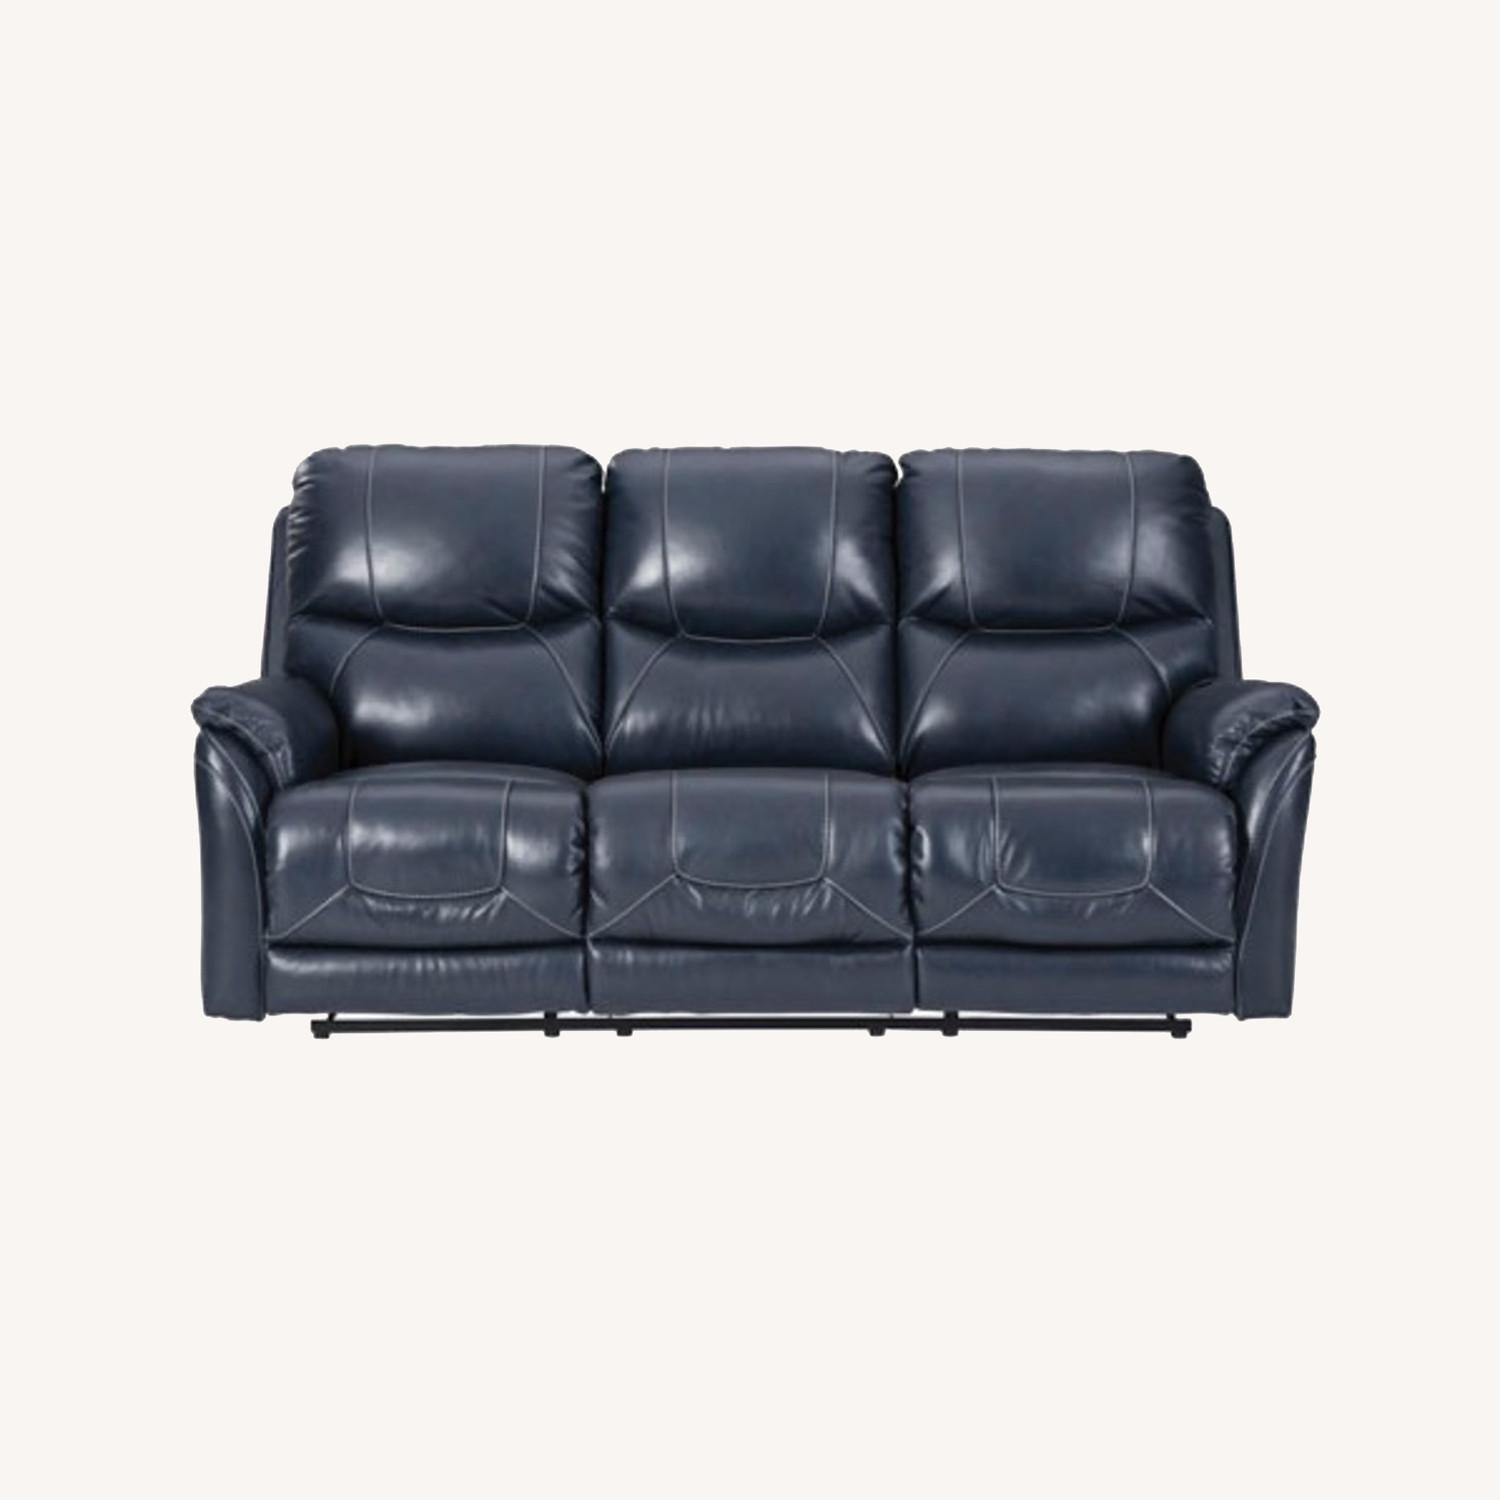 Ashley Furniture Genuine Leather Power Reclining Sofa - image-0